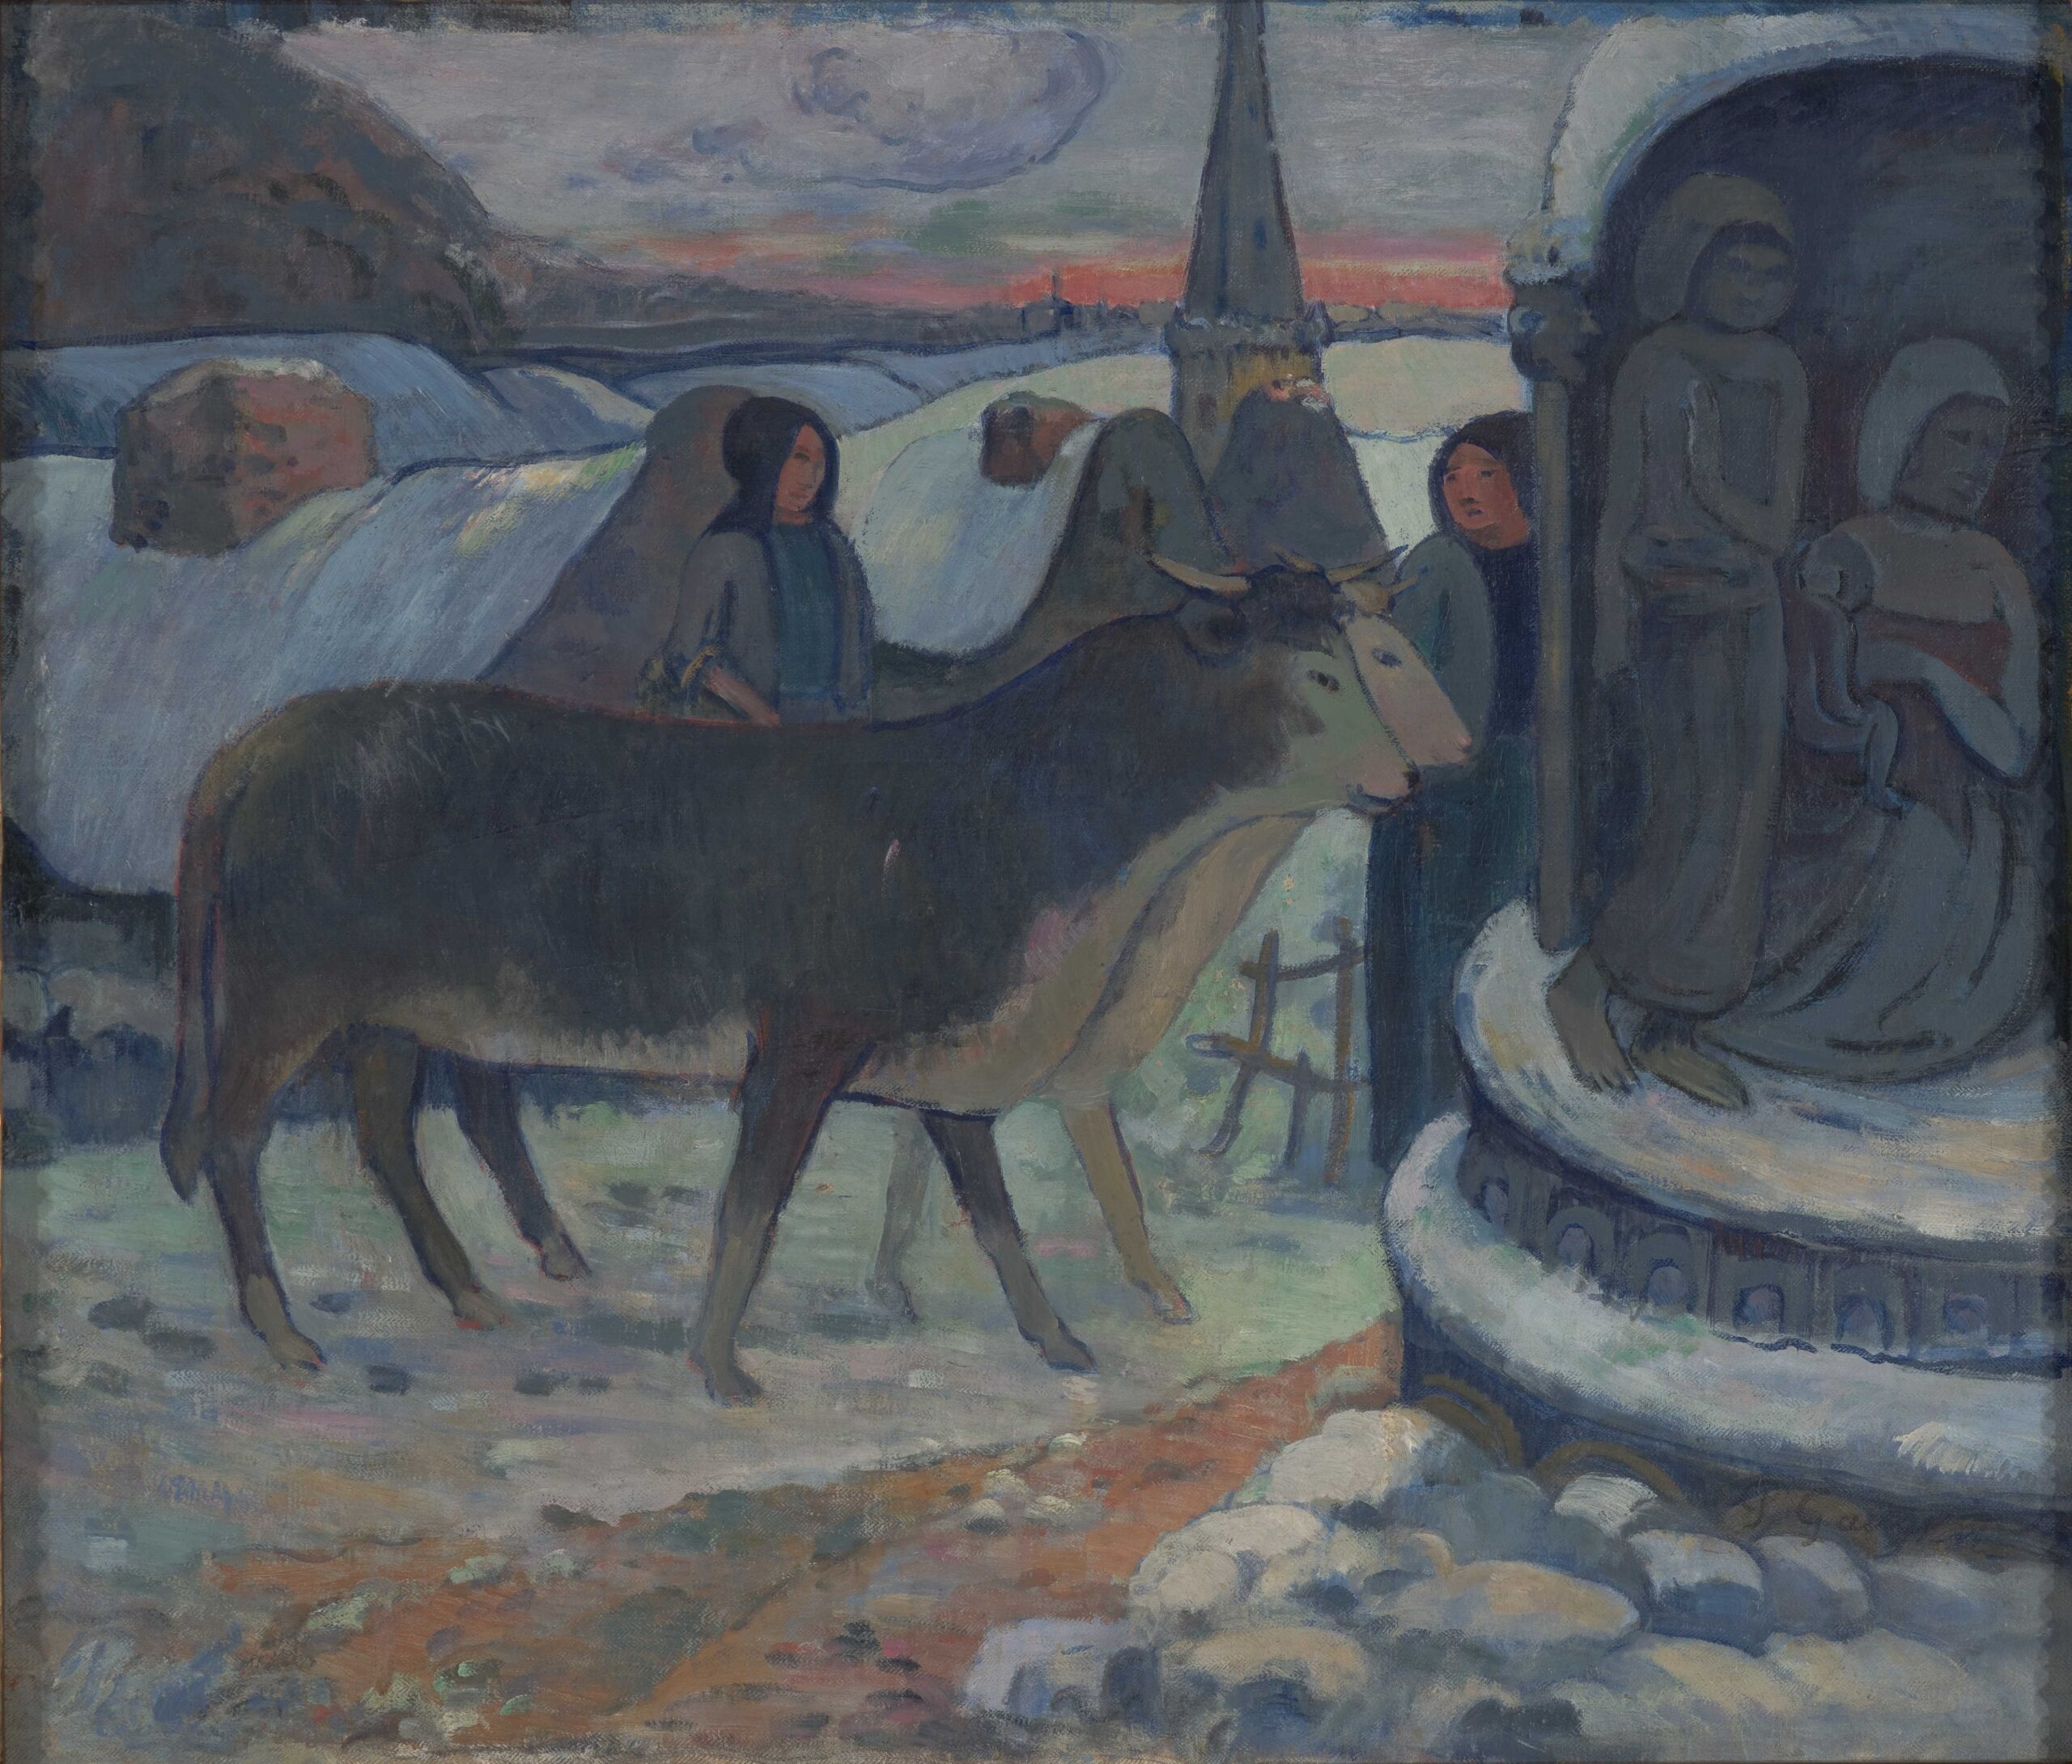 Paul Gauguin (French, 1848–1903), Christmas Night (The Blessing of the Oxen), 1902–3. Oil on canvas, 38 3/8 × 43 in. Indianapolis Museum of Art at Newfields, Samuel Josefowitz Collection of the School of Pont-Aven, through the generosity of Lilly Endowment Inc., the Josefowitz Family, Mr. and Mrs. James M. Cornelius, Mr. and Mrs. Leonard J. Betley, Lori and Dan Efroymson, and other Friends of the Museum, 1998.169